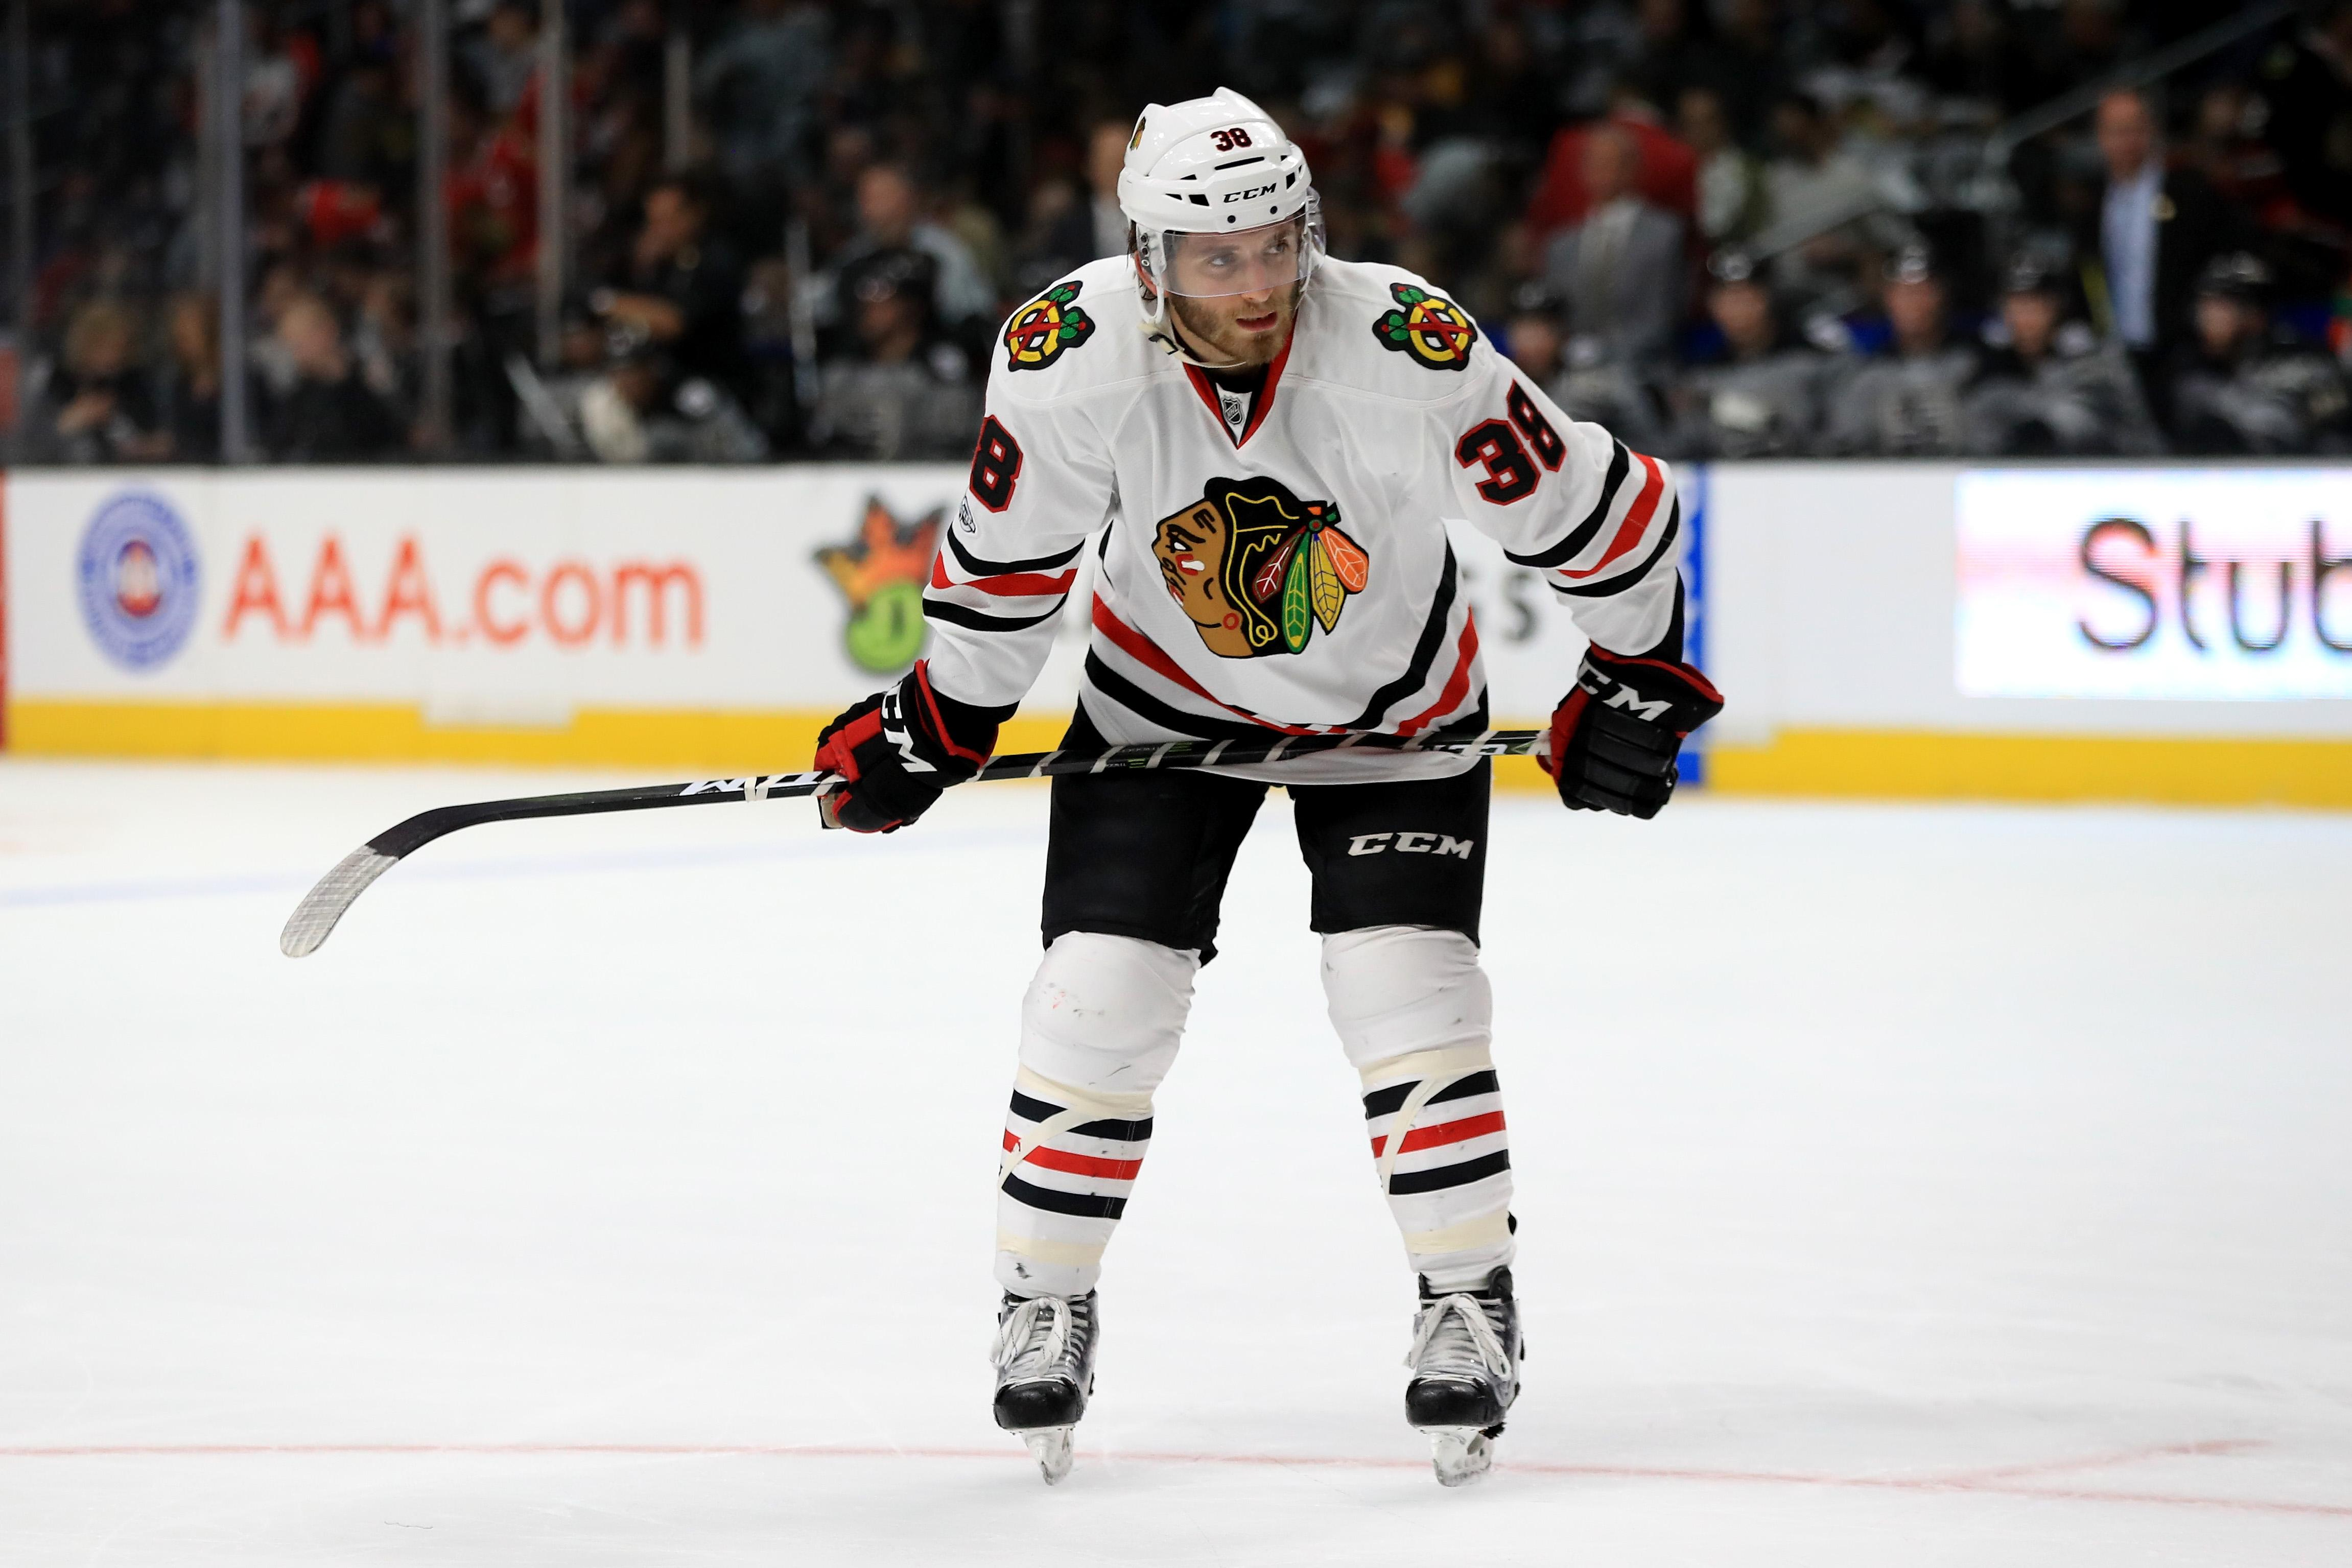 NHL Playoffs 2017: First-Round Series, Stanley Cup Betting Odds Have Blackhawks, Capitals Favored